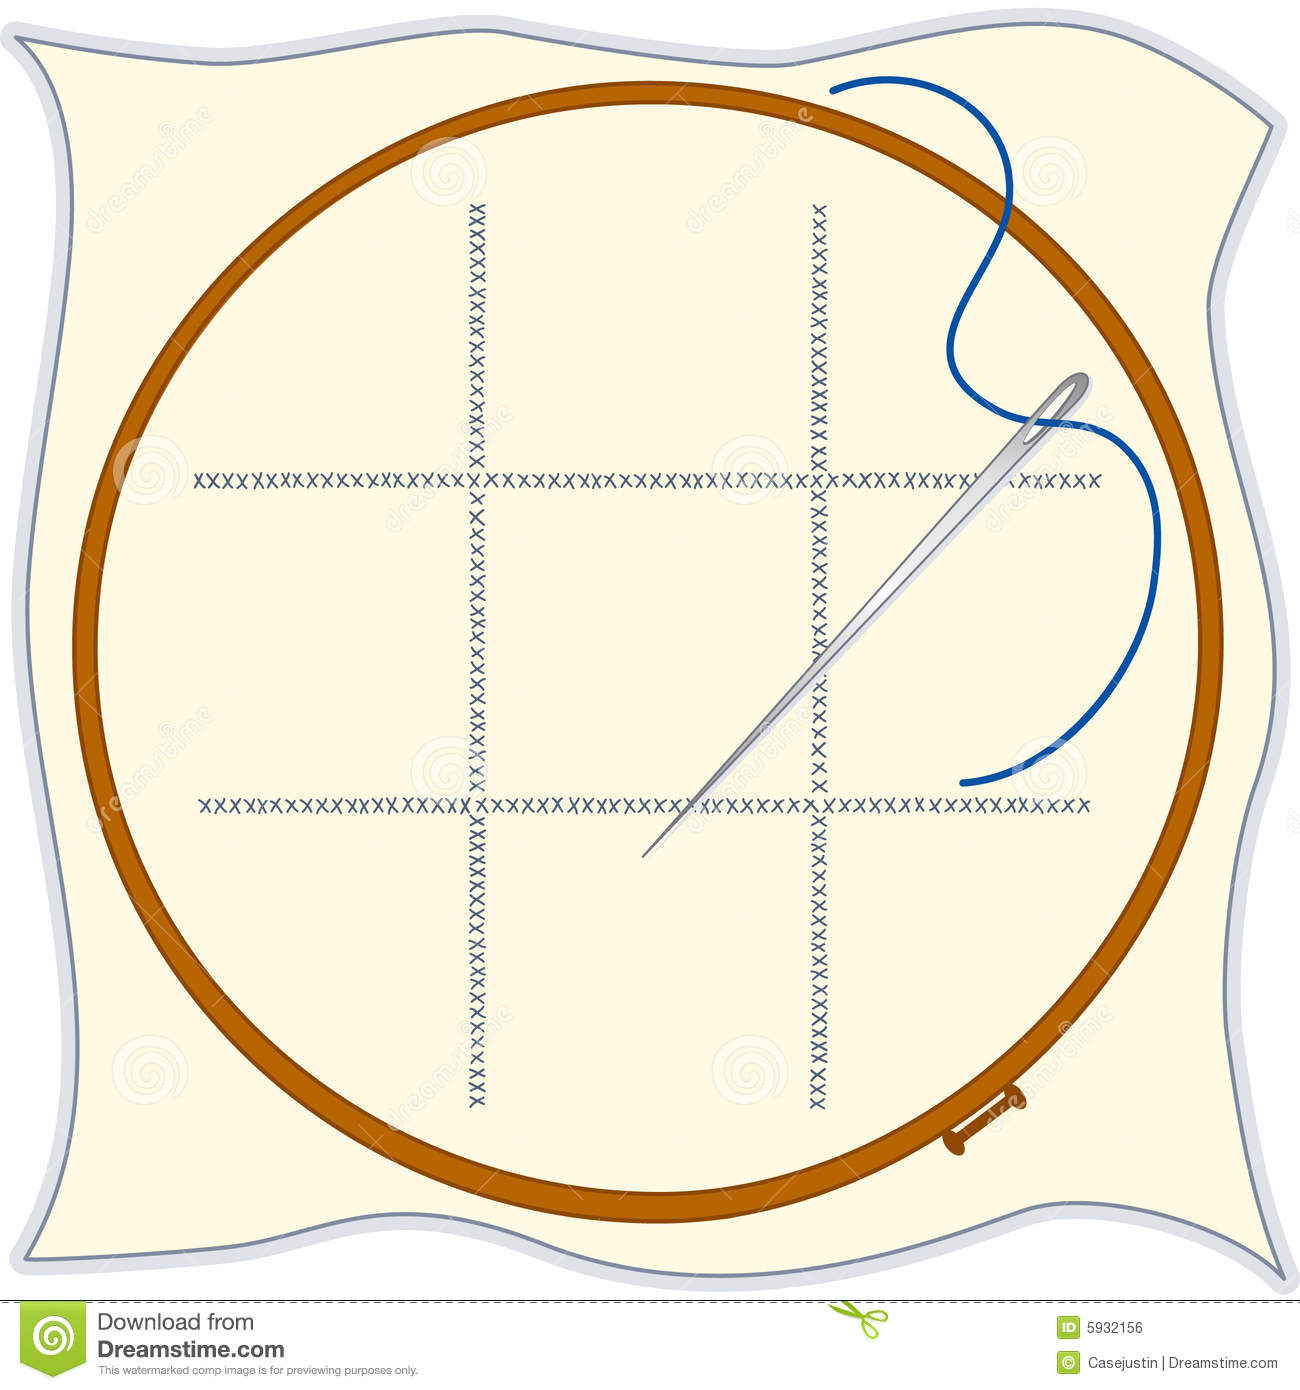 Embroidery Hoop Cross Stitch Needle   Threa Royalty Free Stock Image